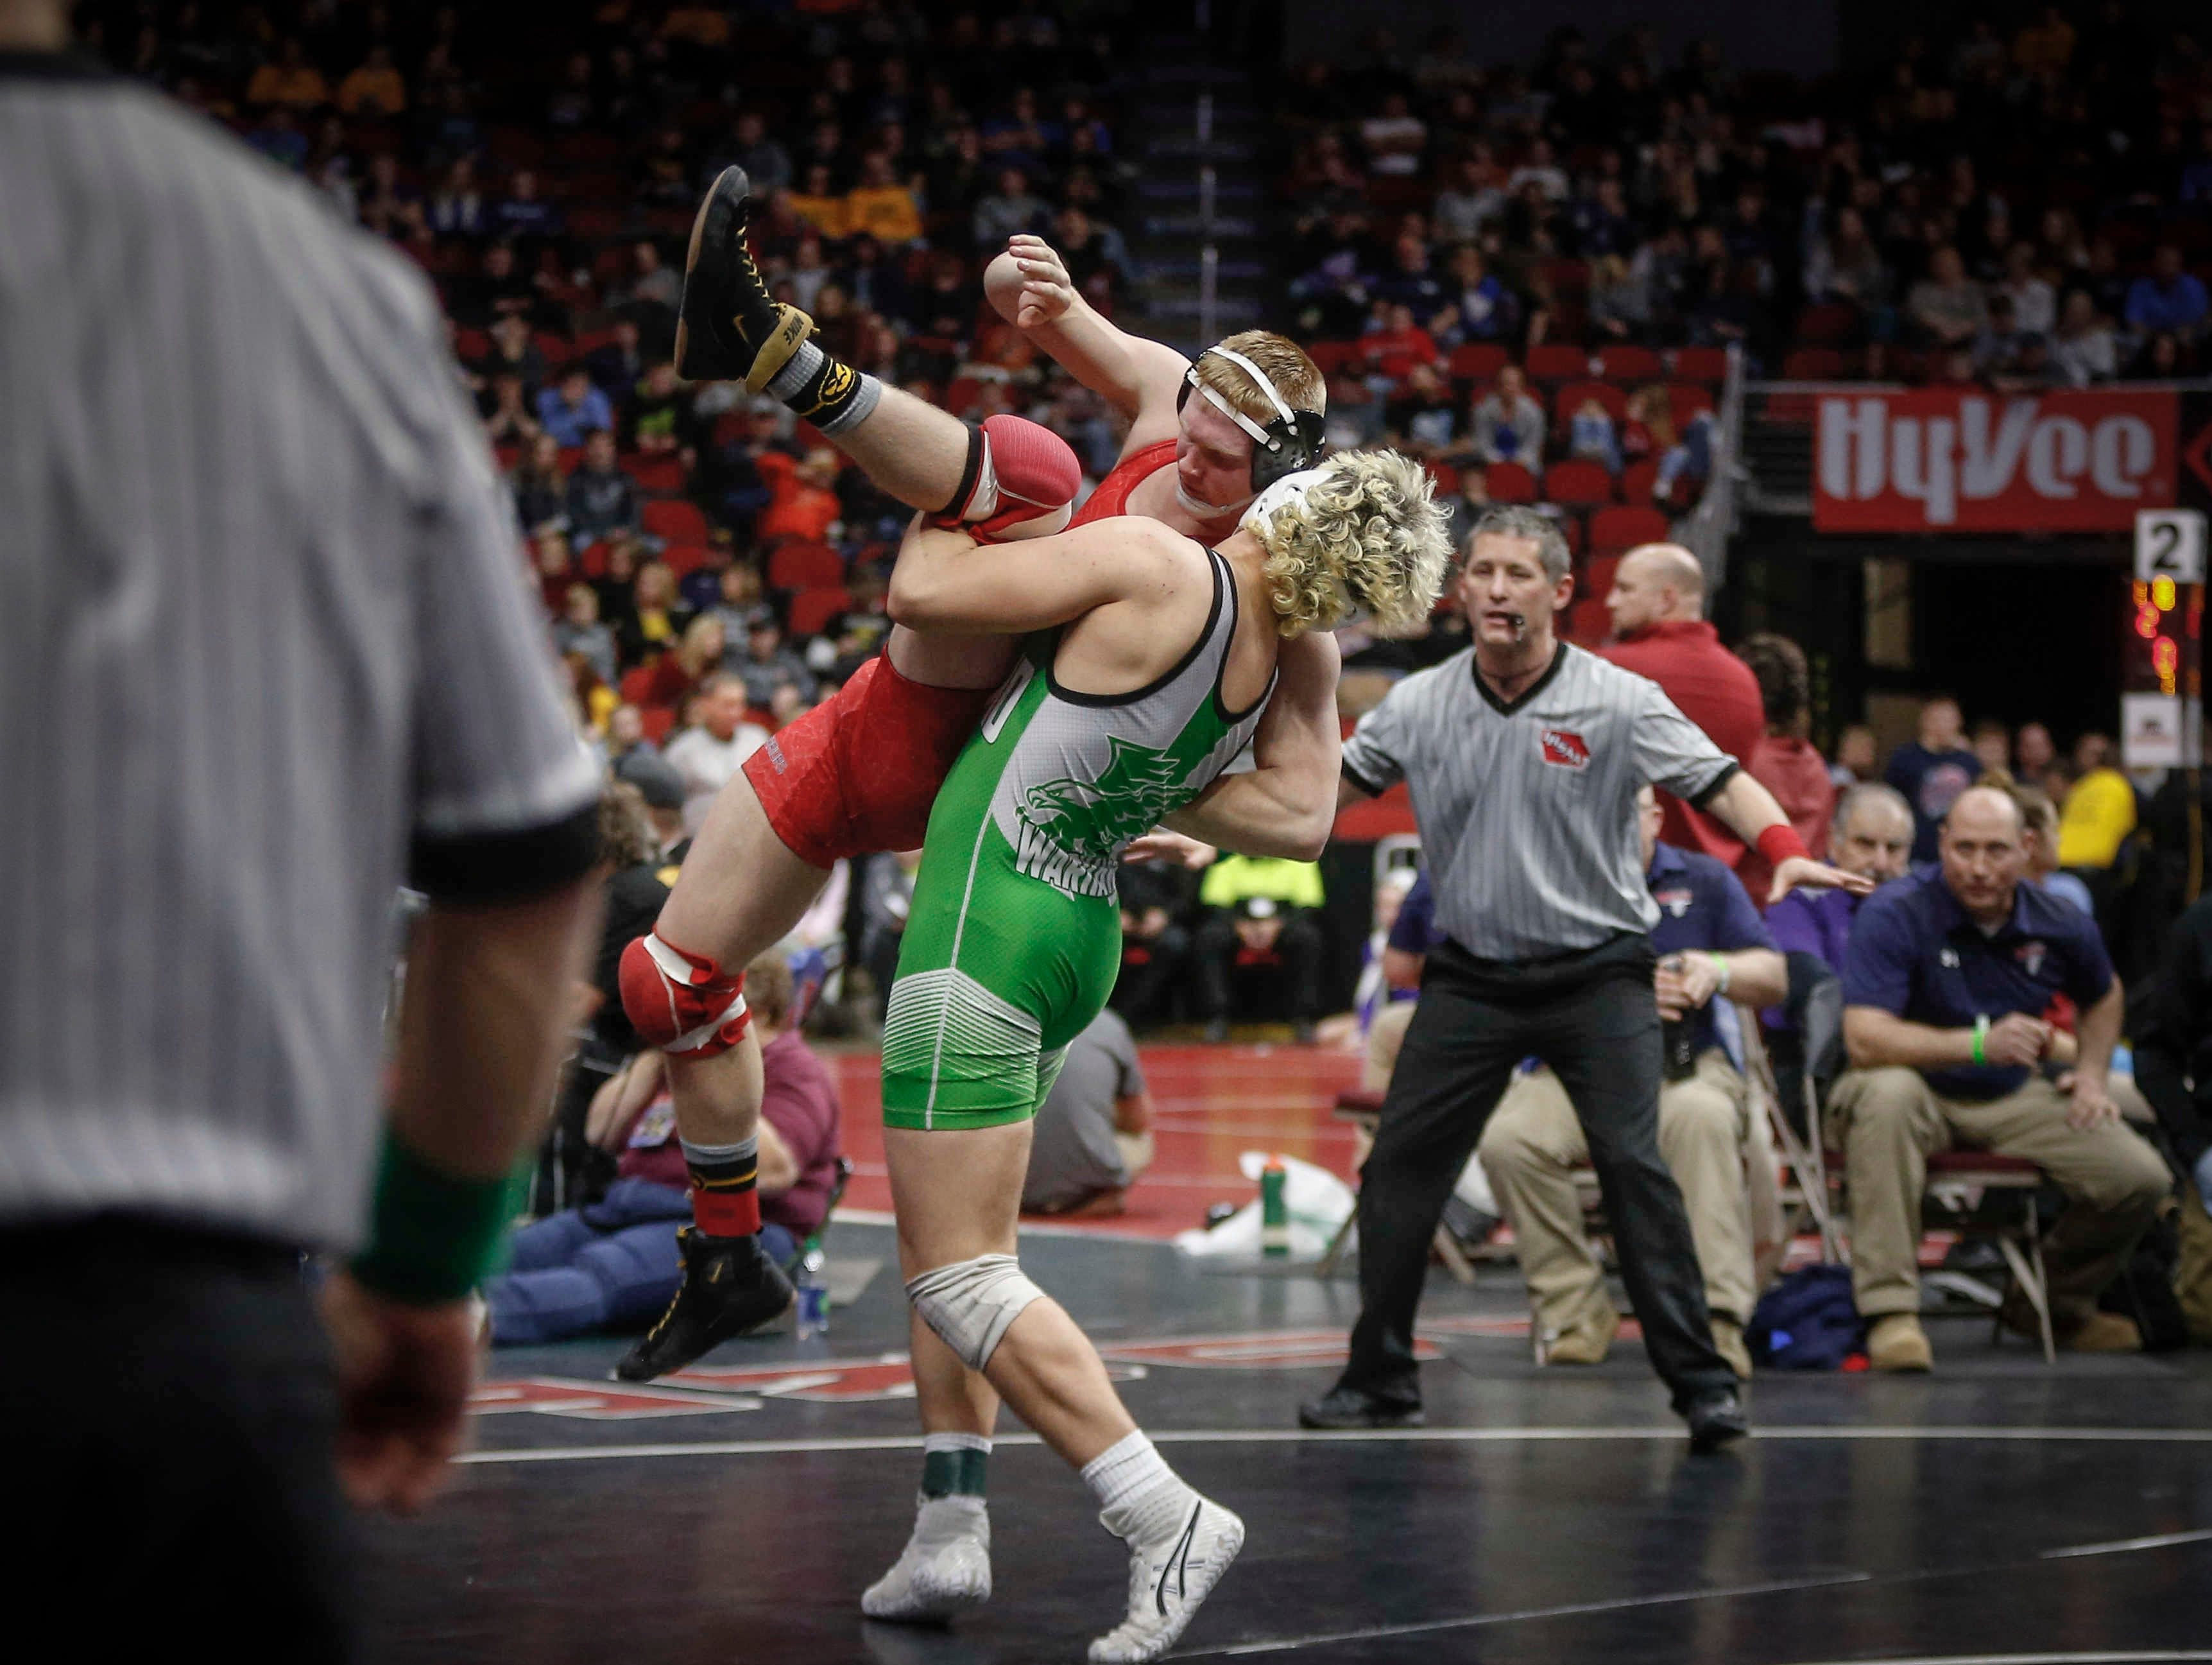 Southeast Warren senior Colby Page takes Alta-Aurelia sophomore Alex De Roos down to the mat in their match at 182 pounds during the opening round of Class 1A matches during the Iowa high school state wrestling tournament at Wells Fargo Arena on Thursday, Feb. 14, 2019, in Des Moines.